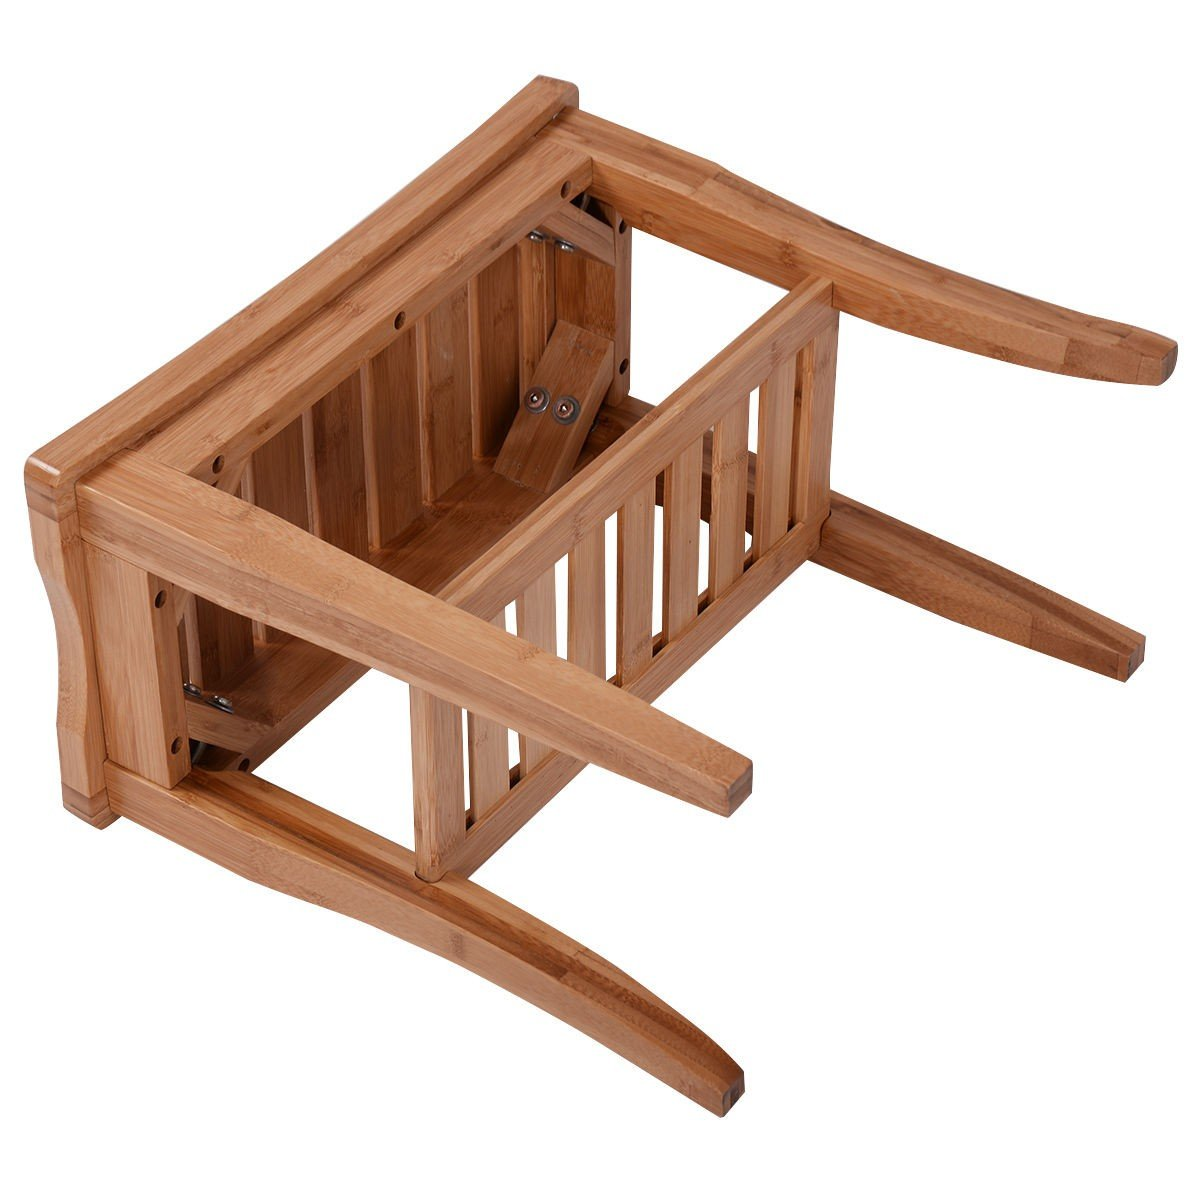 Bamboo Bathroom Shower Bench with Storage Shelf – By Choice Products